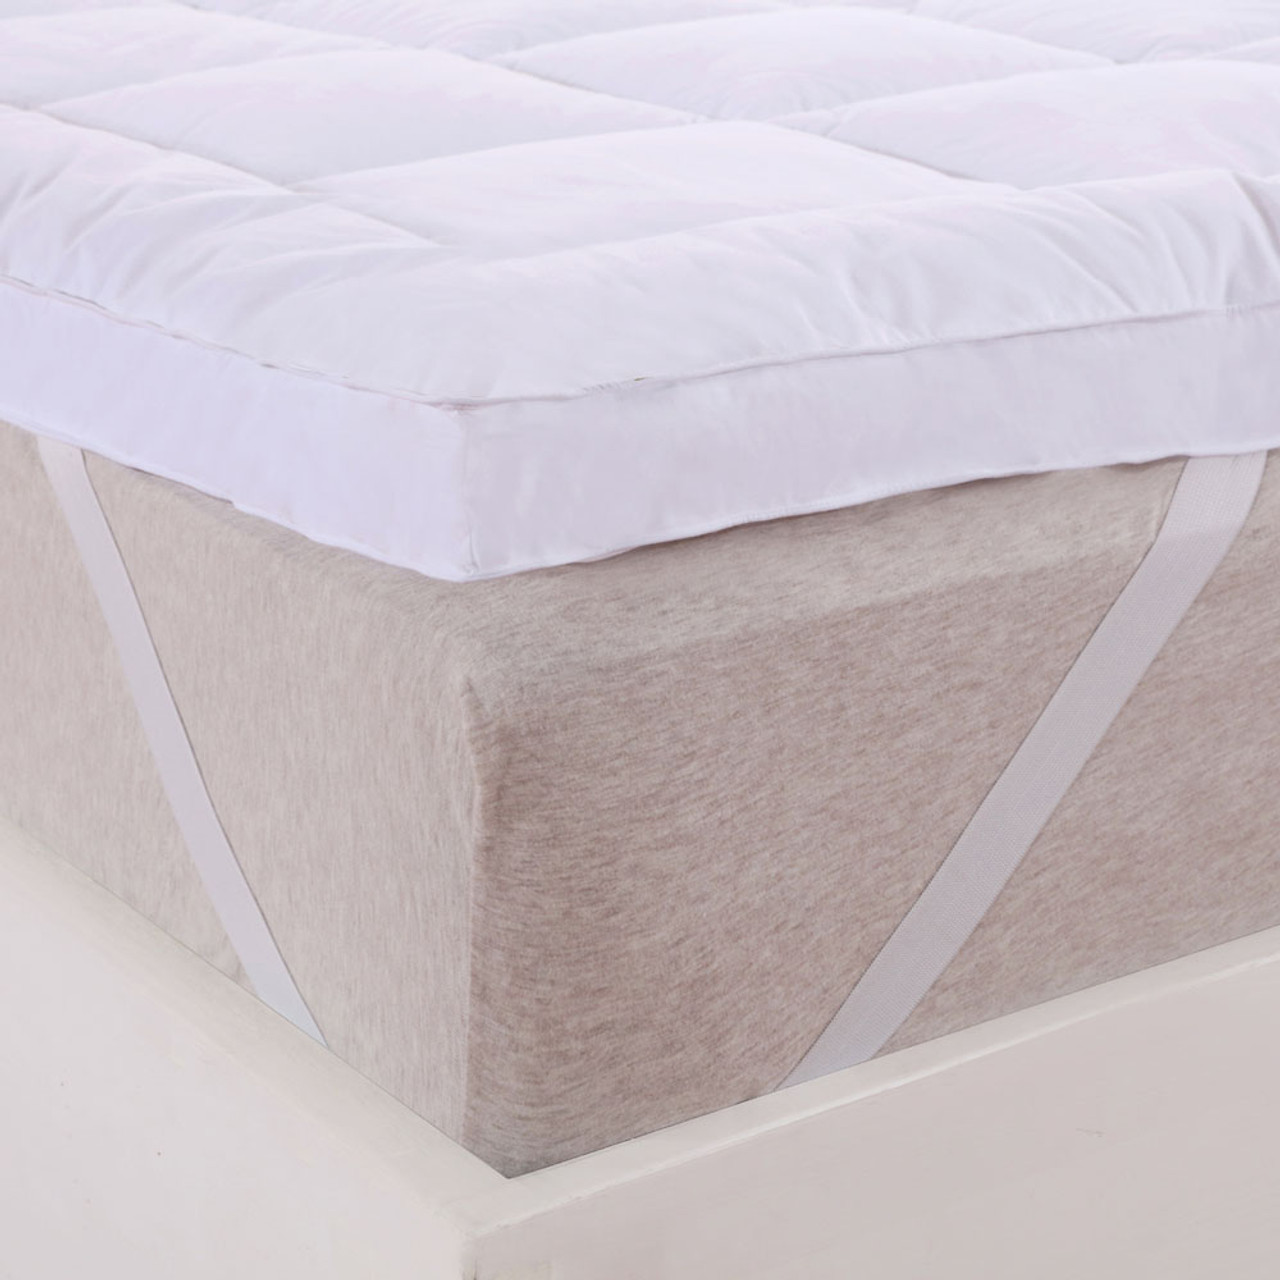 2 Inch Thick Comfort Mattress Topper 100 Cotton Shell